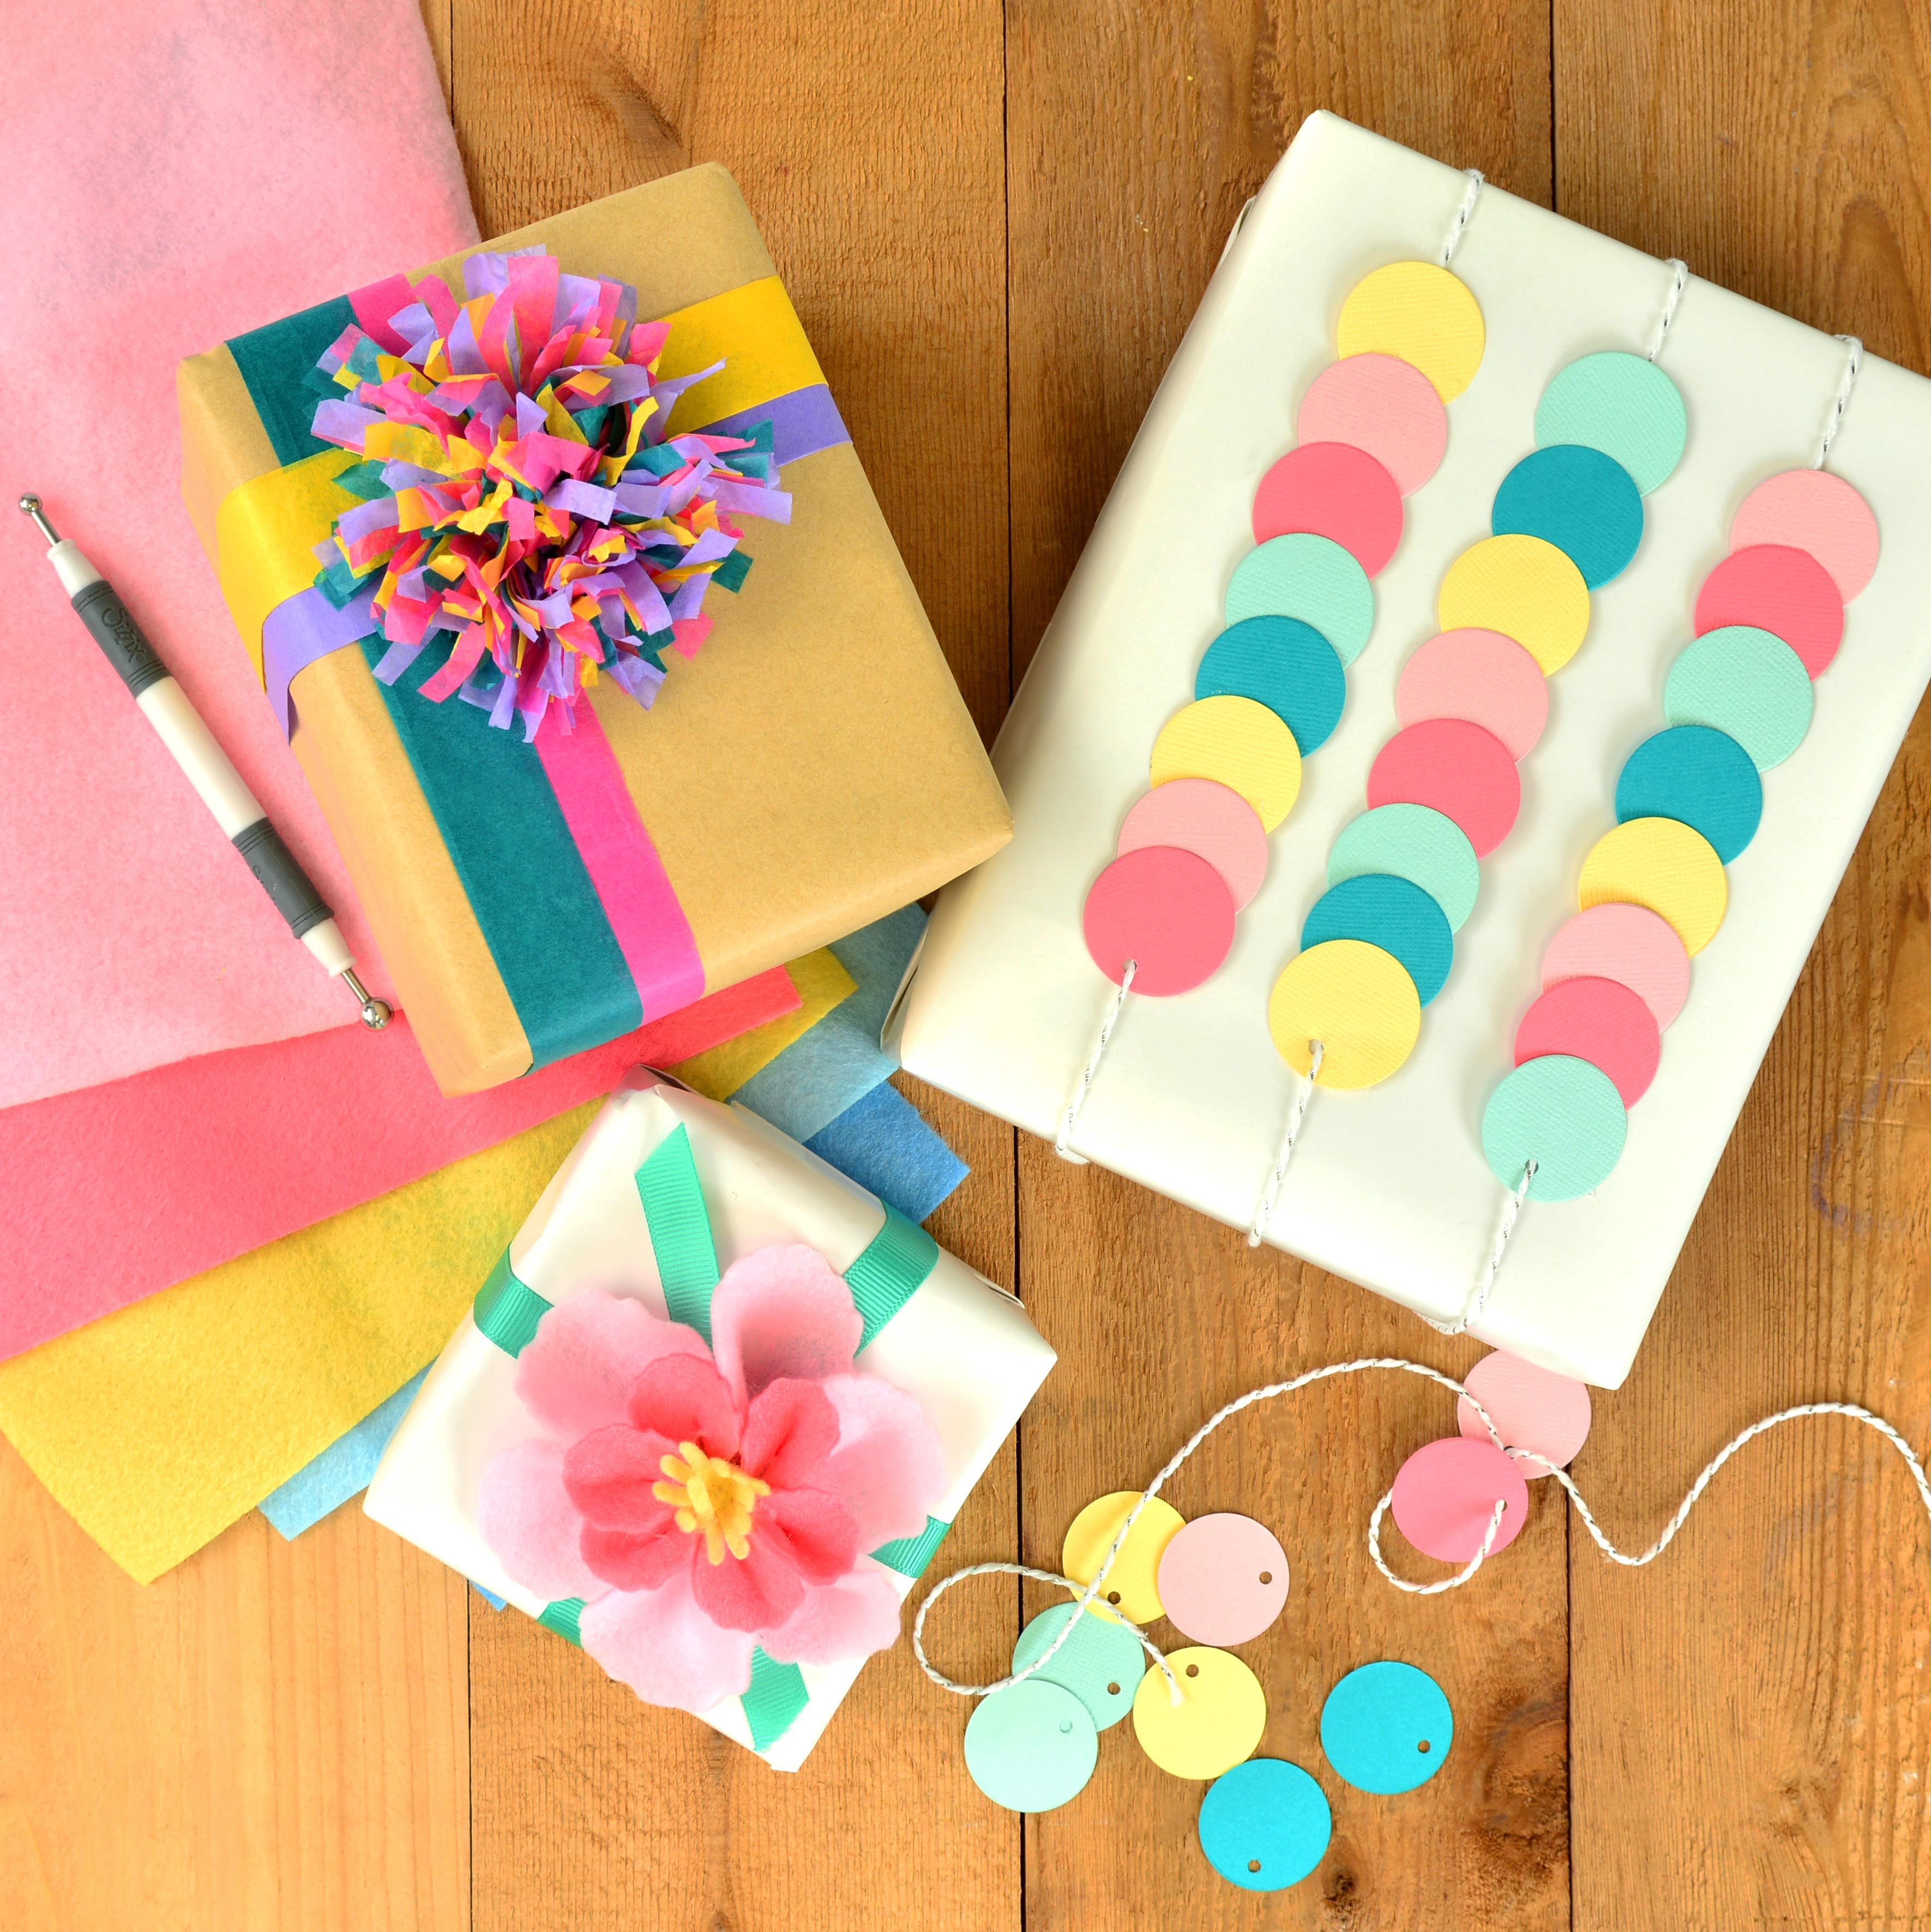 How To Make Your Own Creative Gift Wrap Sizzix Blog The Start